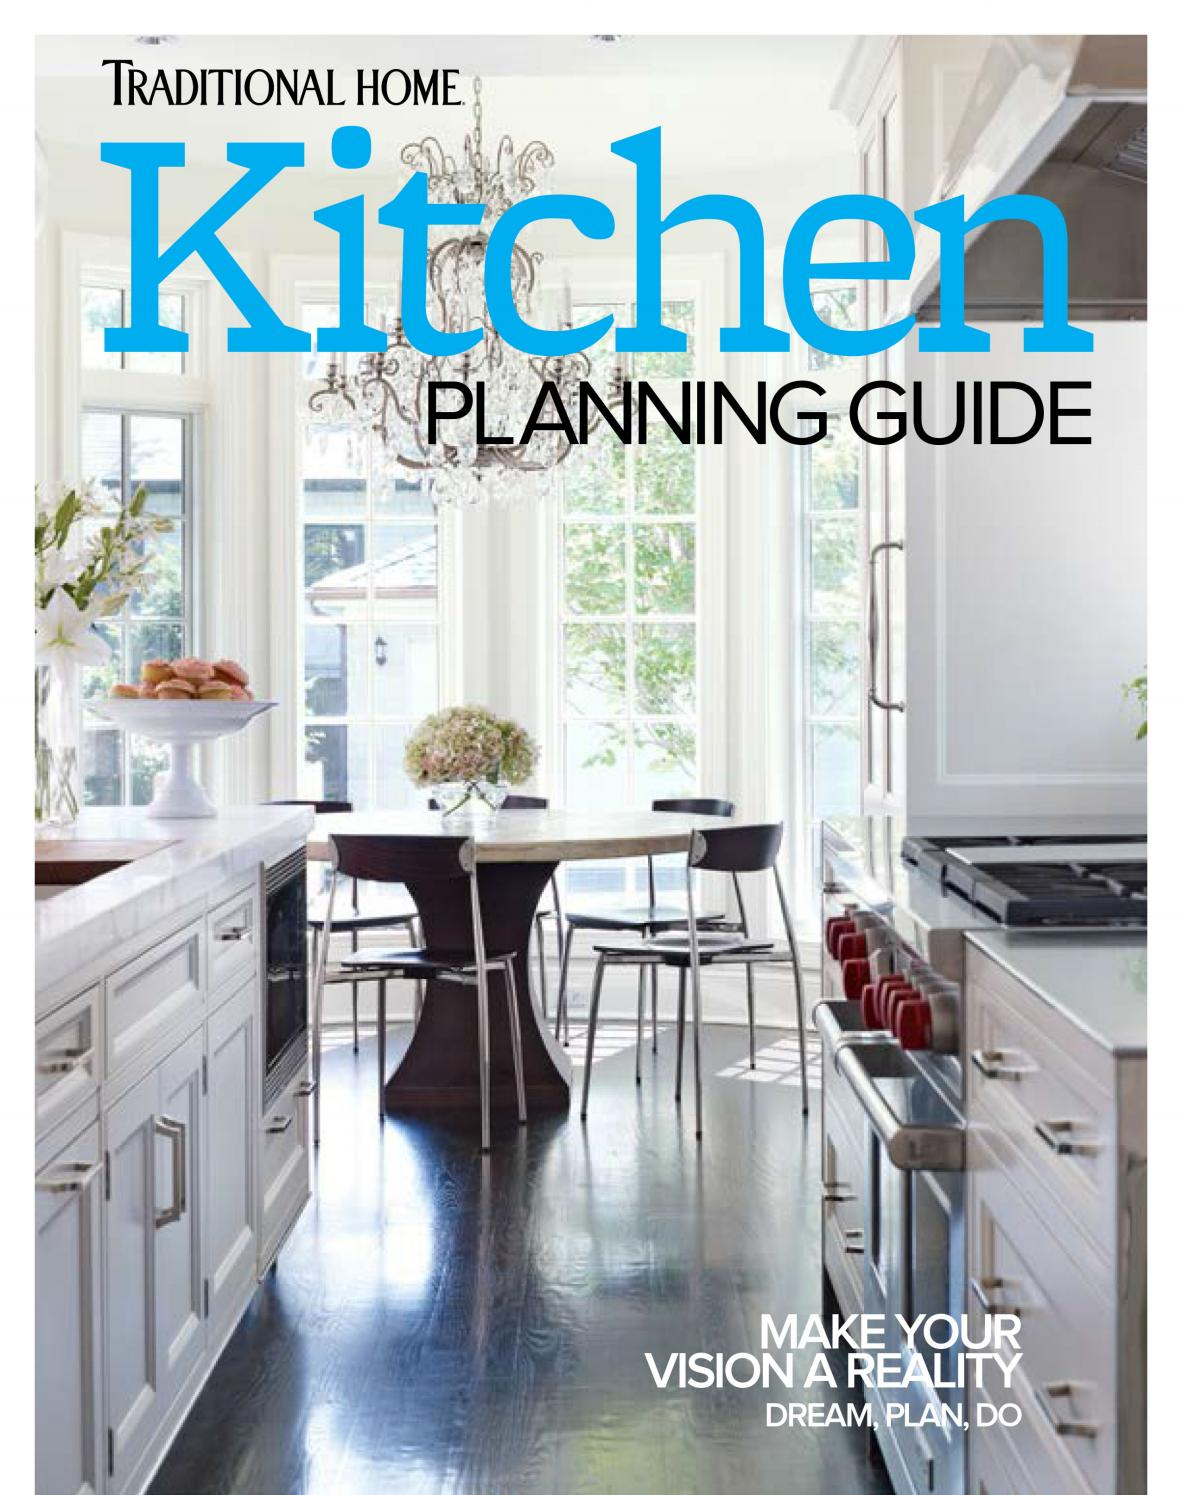 Kitchen Planning Guide 2016 By Upright Interiors Llc Issuu